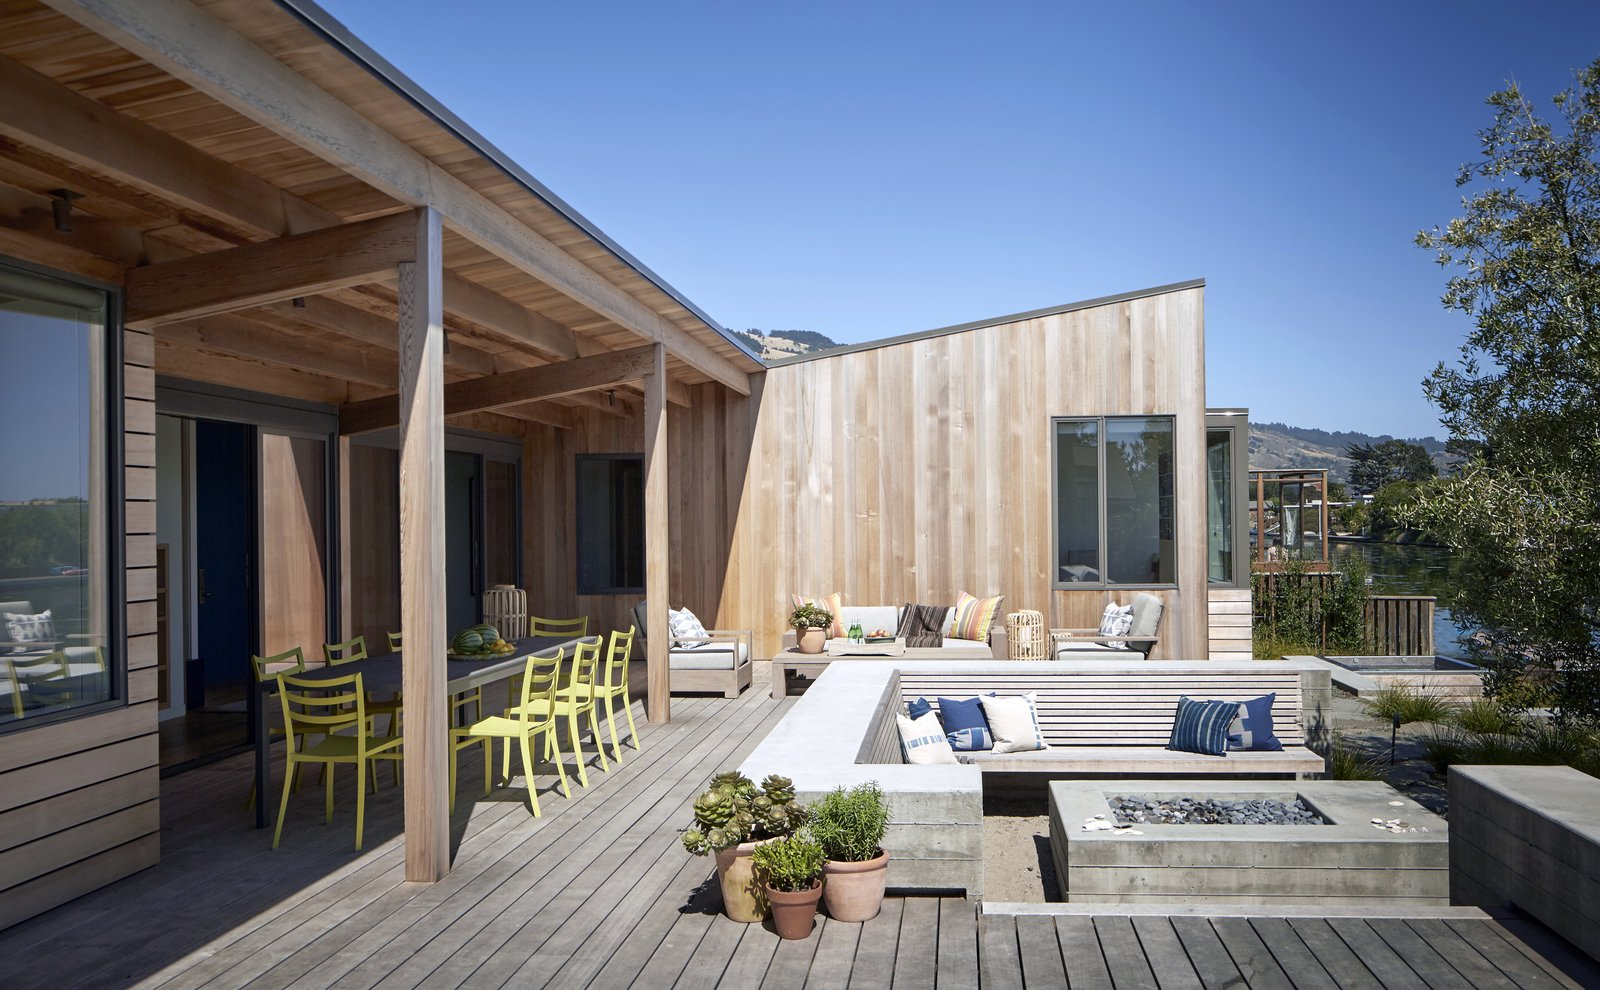 #TurnbullGriffinHaesloop #outdoor #patio #firepit  Tagged: Outdoor, Decking Patio, Porch, Deck, Back Yard, Large Patio, Porch, Deck, and Wood Patio, Porch, Deck. Stinson Beach Lagoon Residence by Turnbull Griffin Haesloop Architects